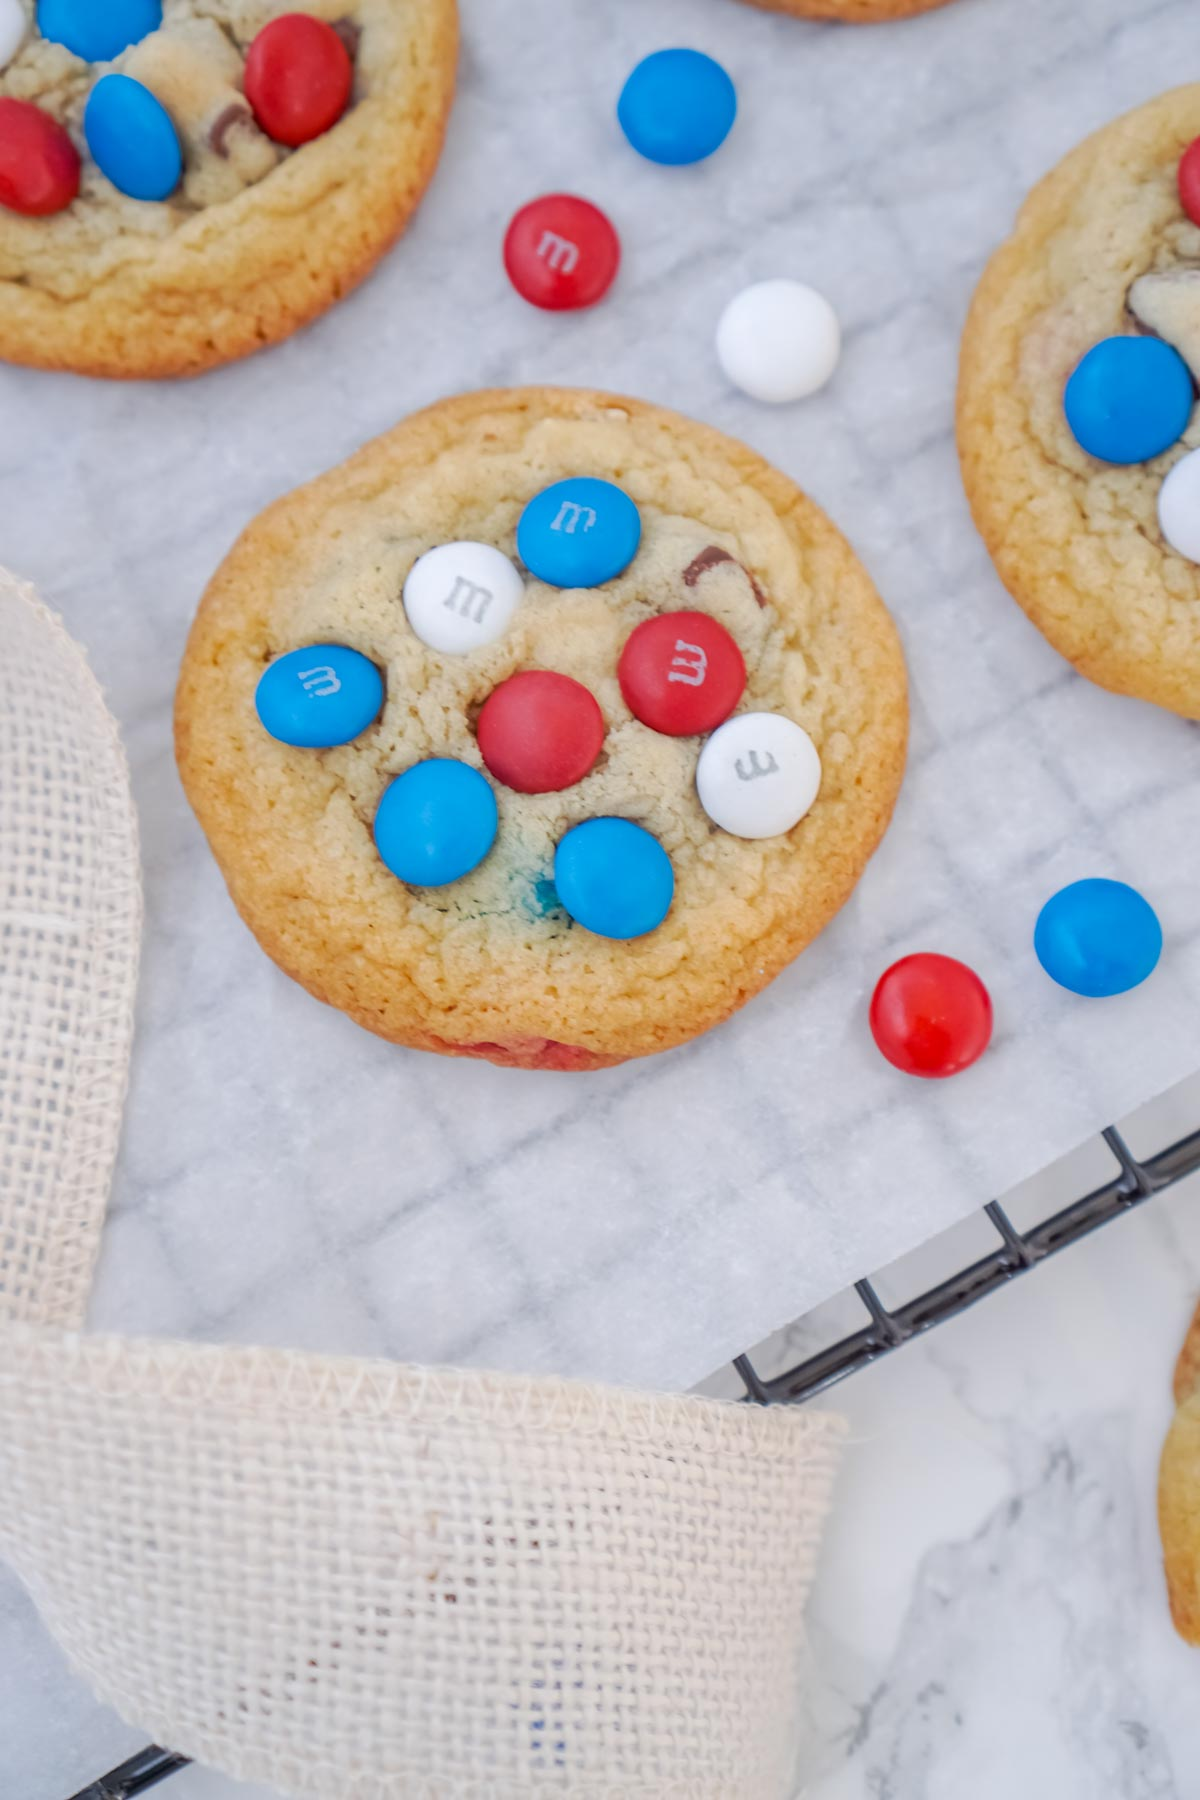 chocolate chip M&M cookies cooling on a wire rack